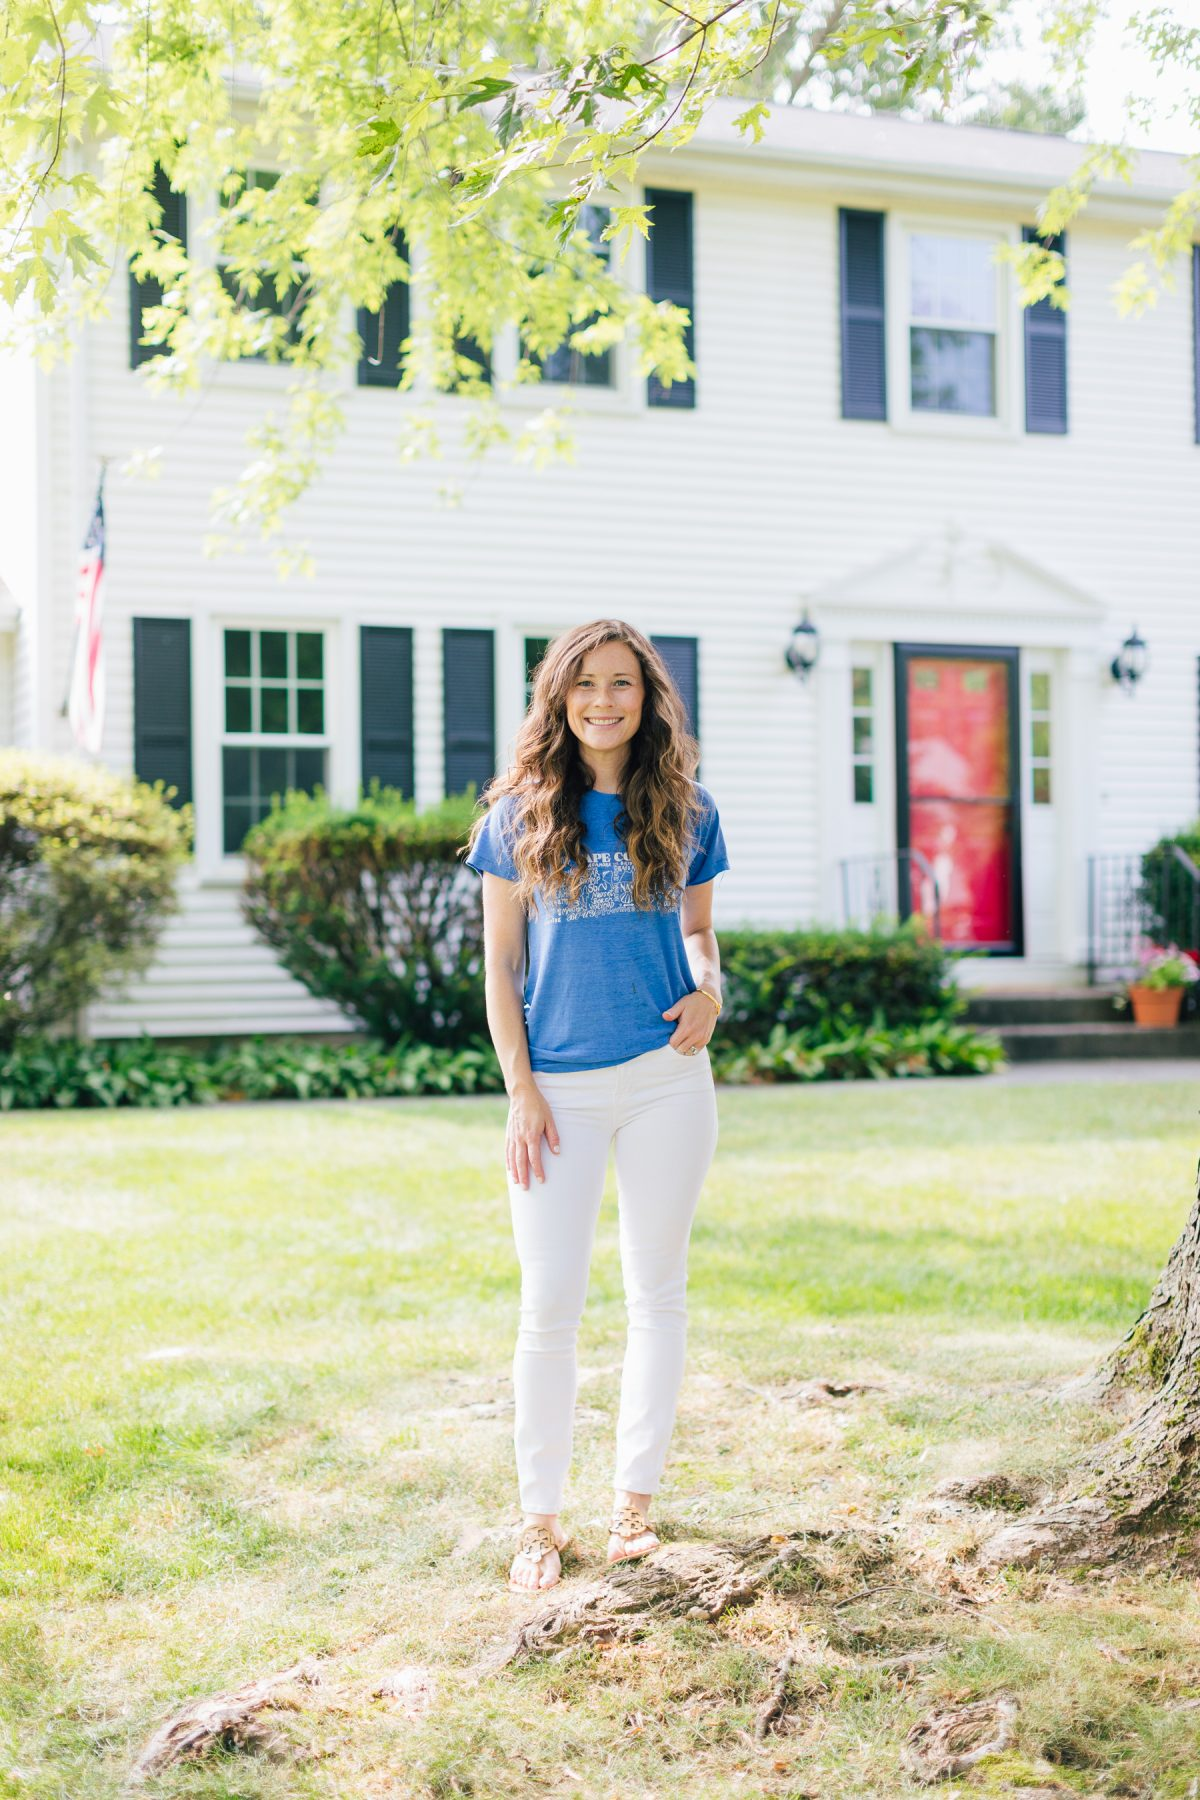 Caitlin Houston at her Home - Connecticut Based Life and Style Mom Blogger